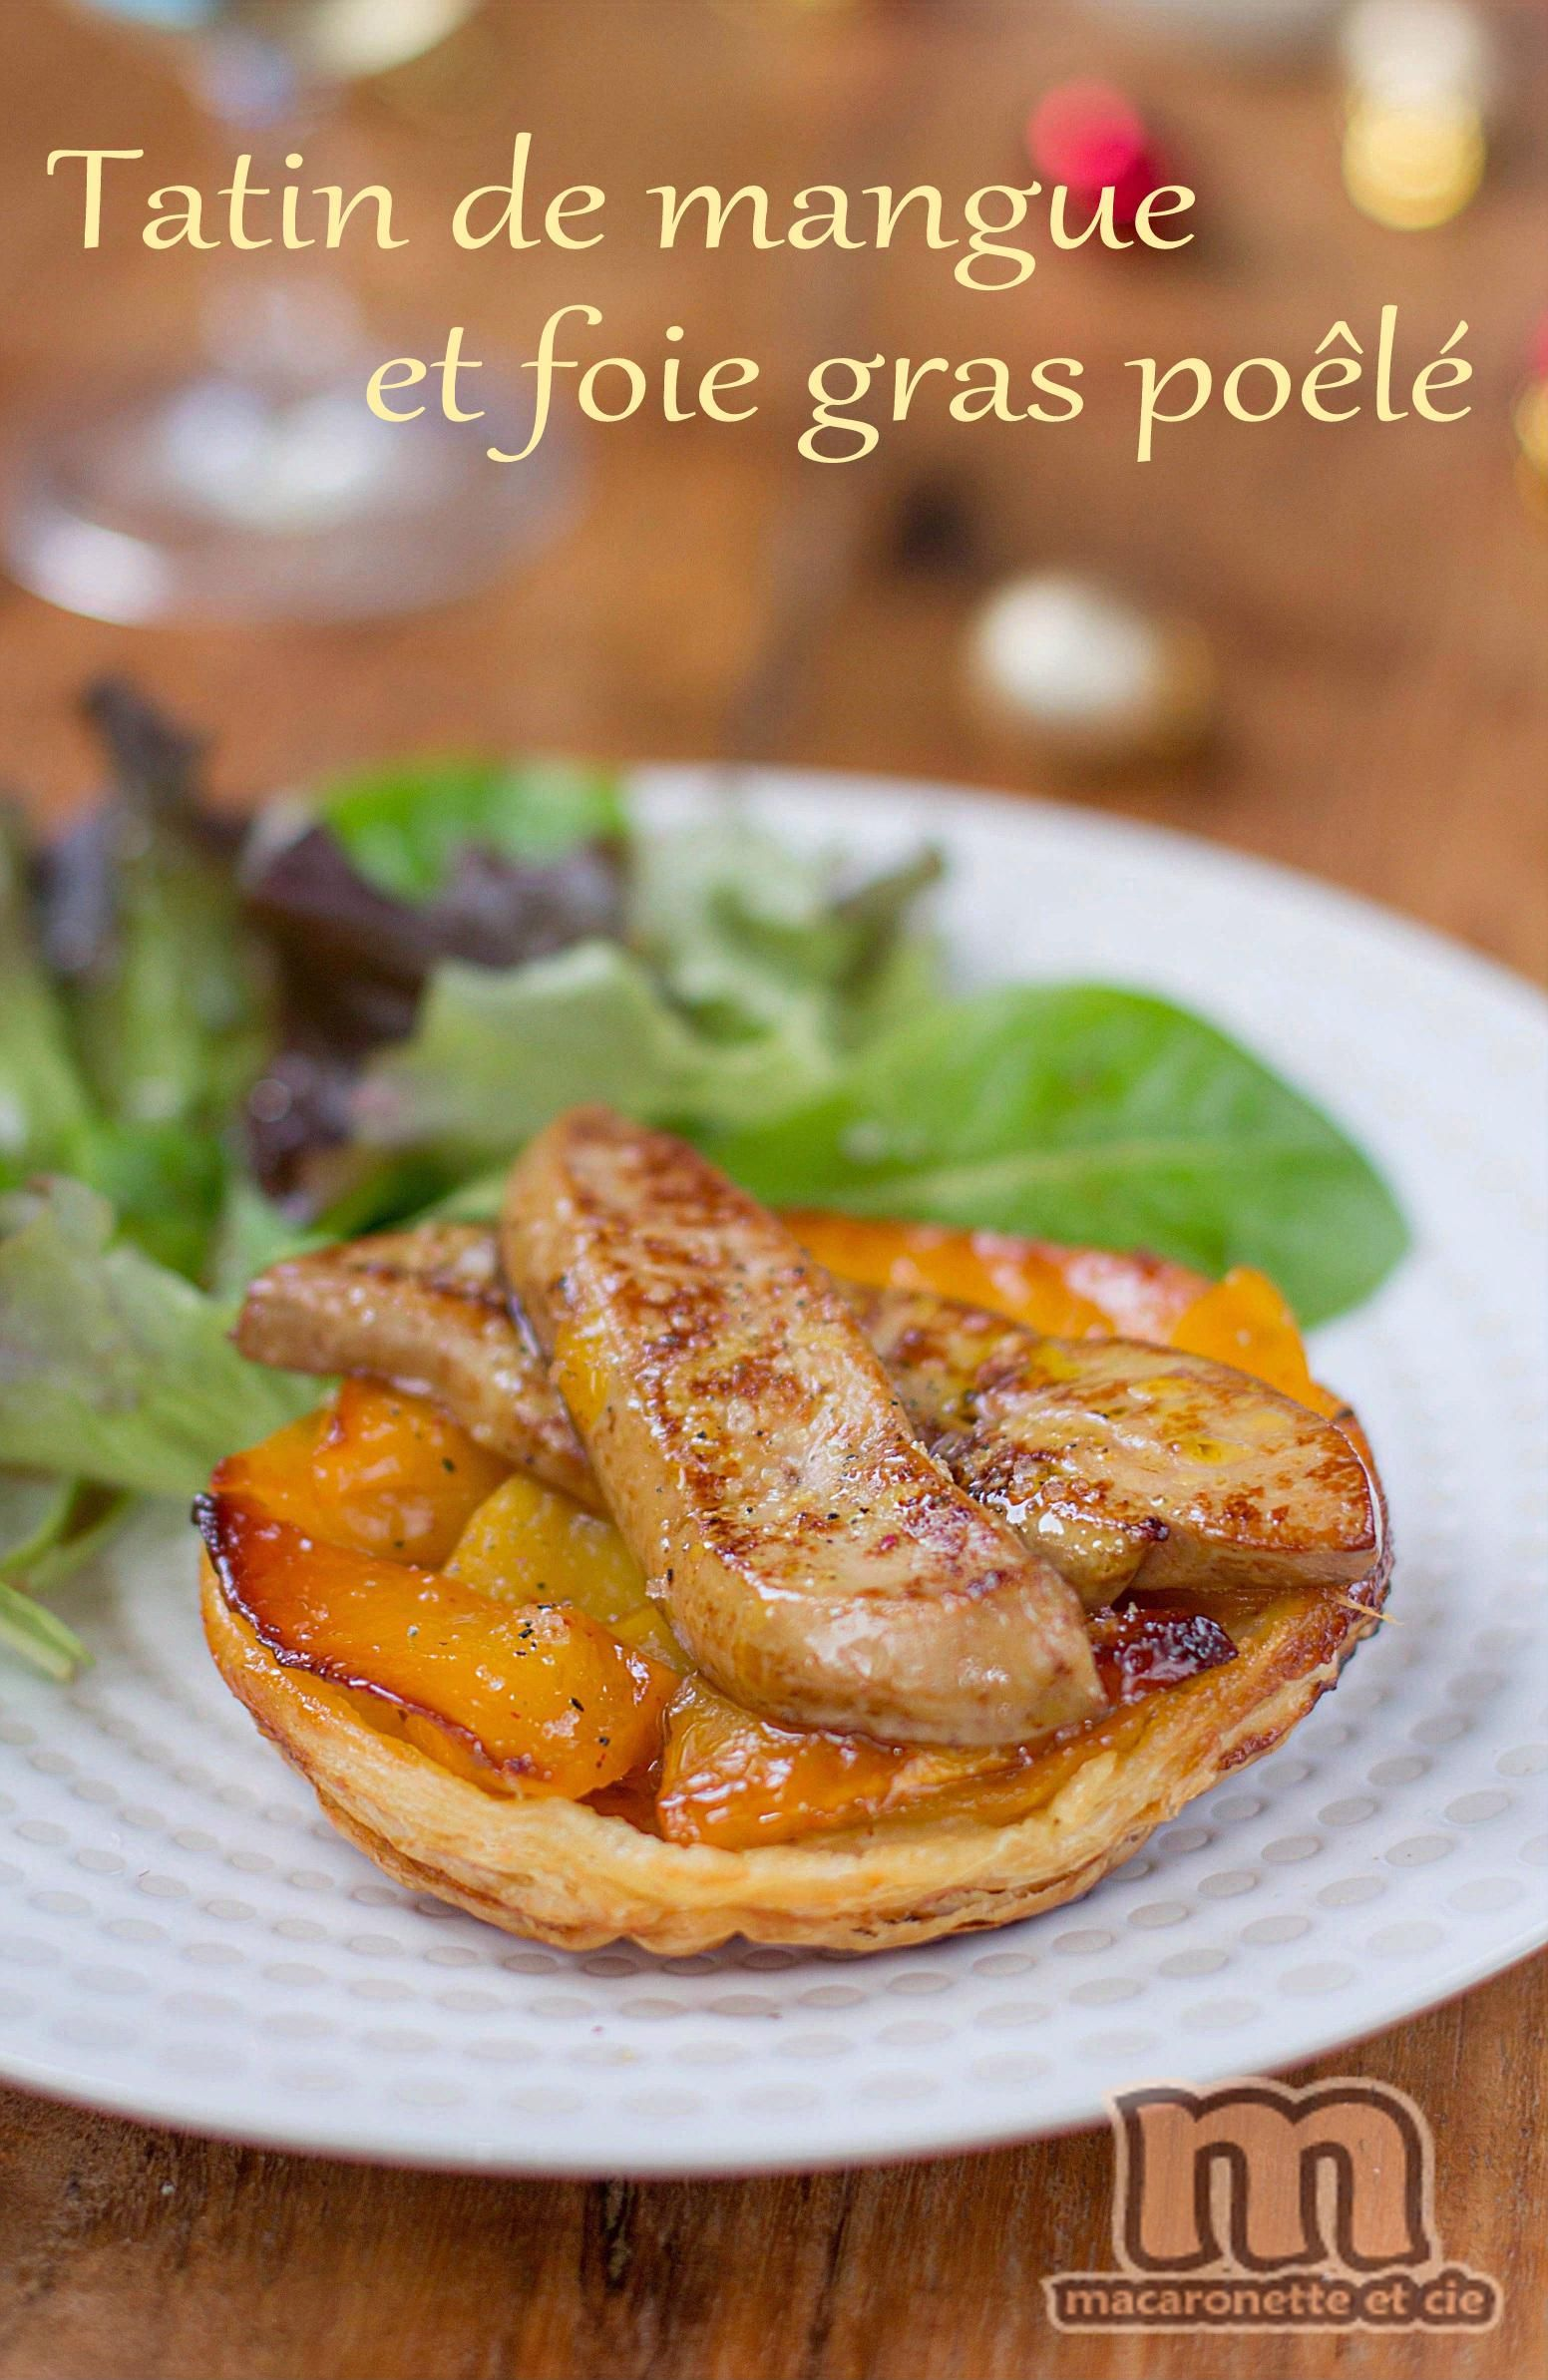 Tatin De Mangue Au Foie Gras Poêlé Macaronette Et Cie Repasnouvelan Toujours Dans Les Rec Pureed Food Recipes Yummy Chicken Recipes Delicious Dinner Recipes